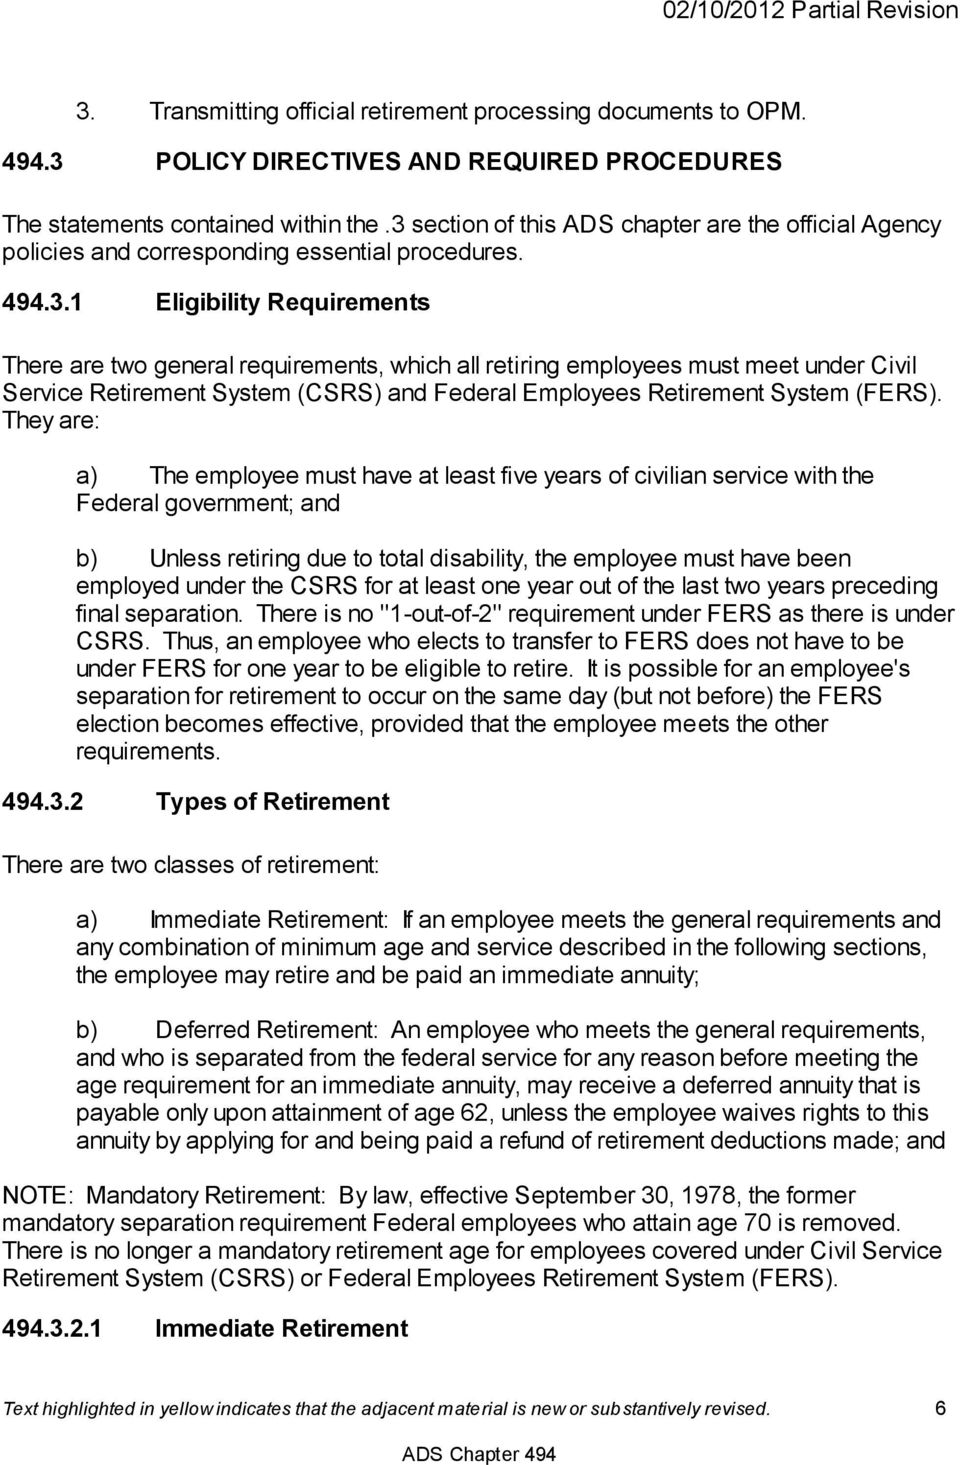 They are: a) The employee must have at least five years of civilian service with the Federal government; and b) Unless retiring due to total disability, the employee must have been employed under the